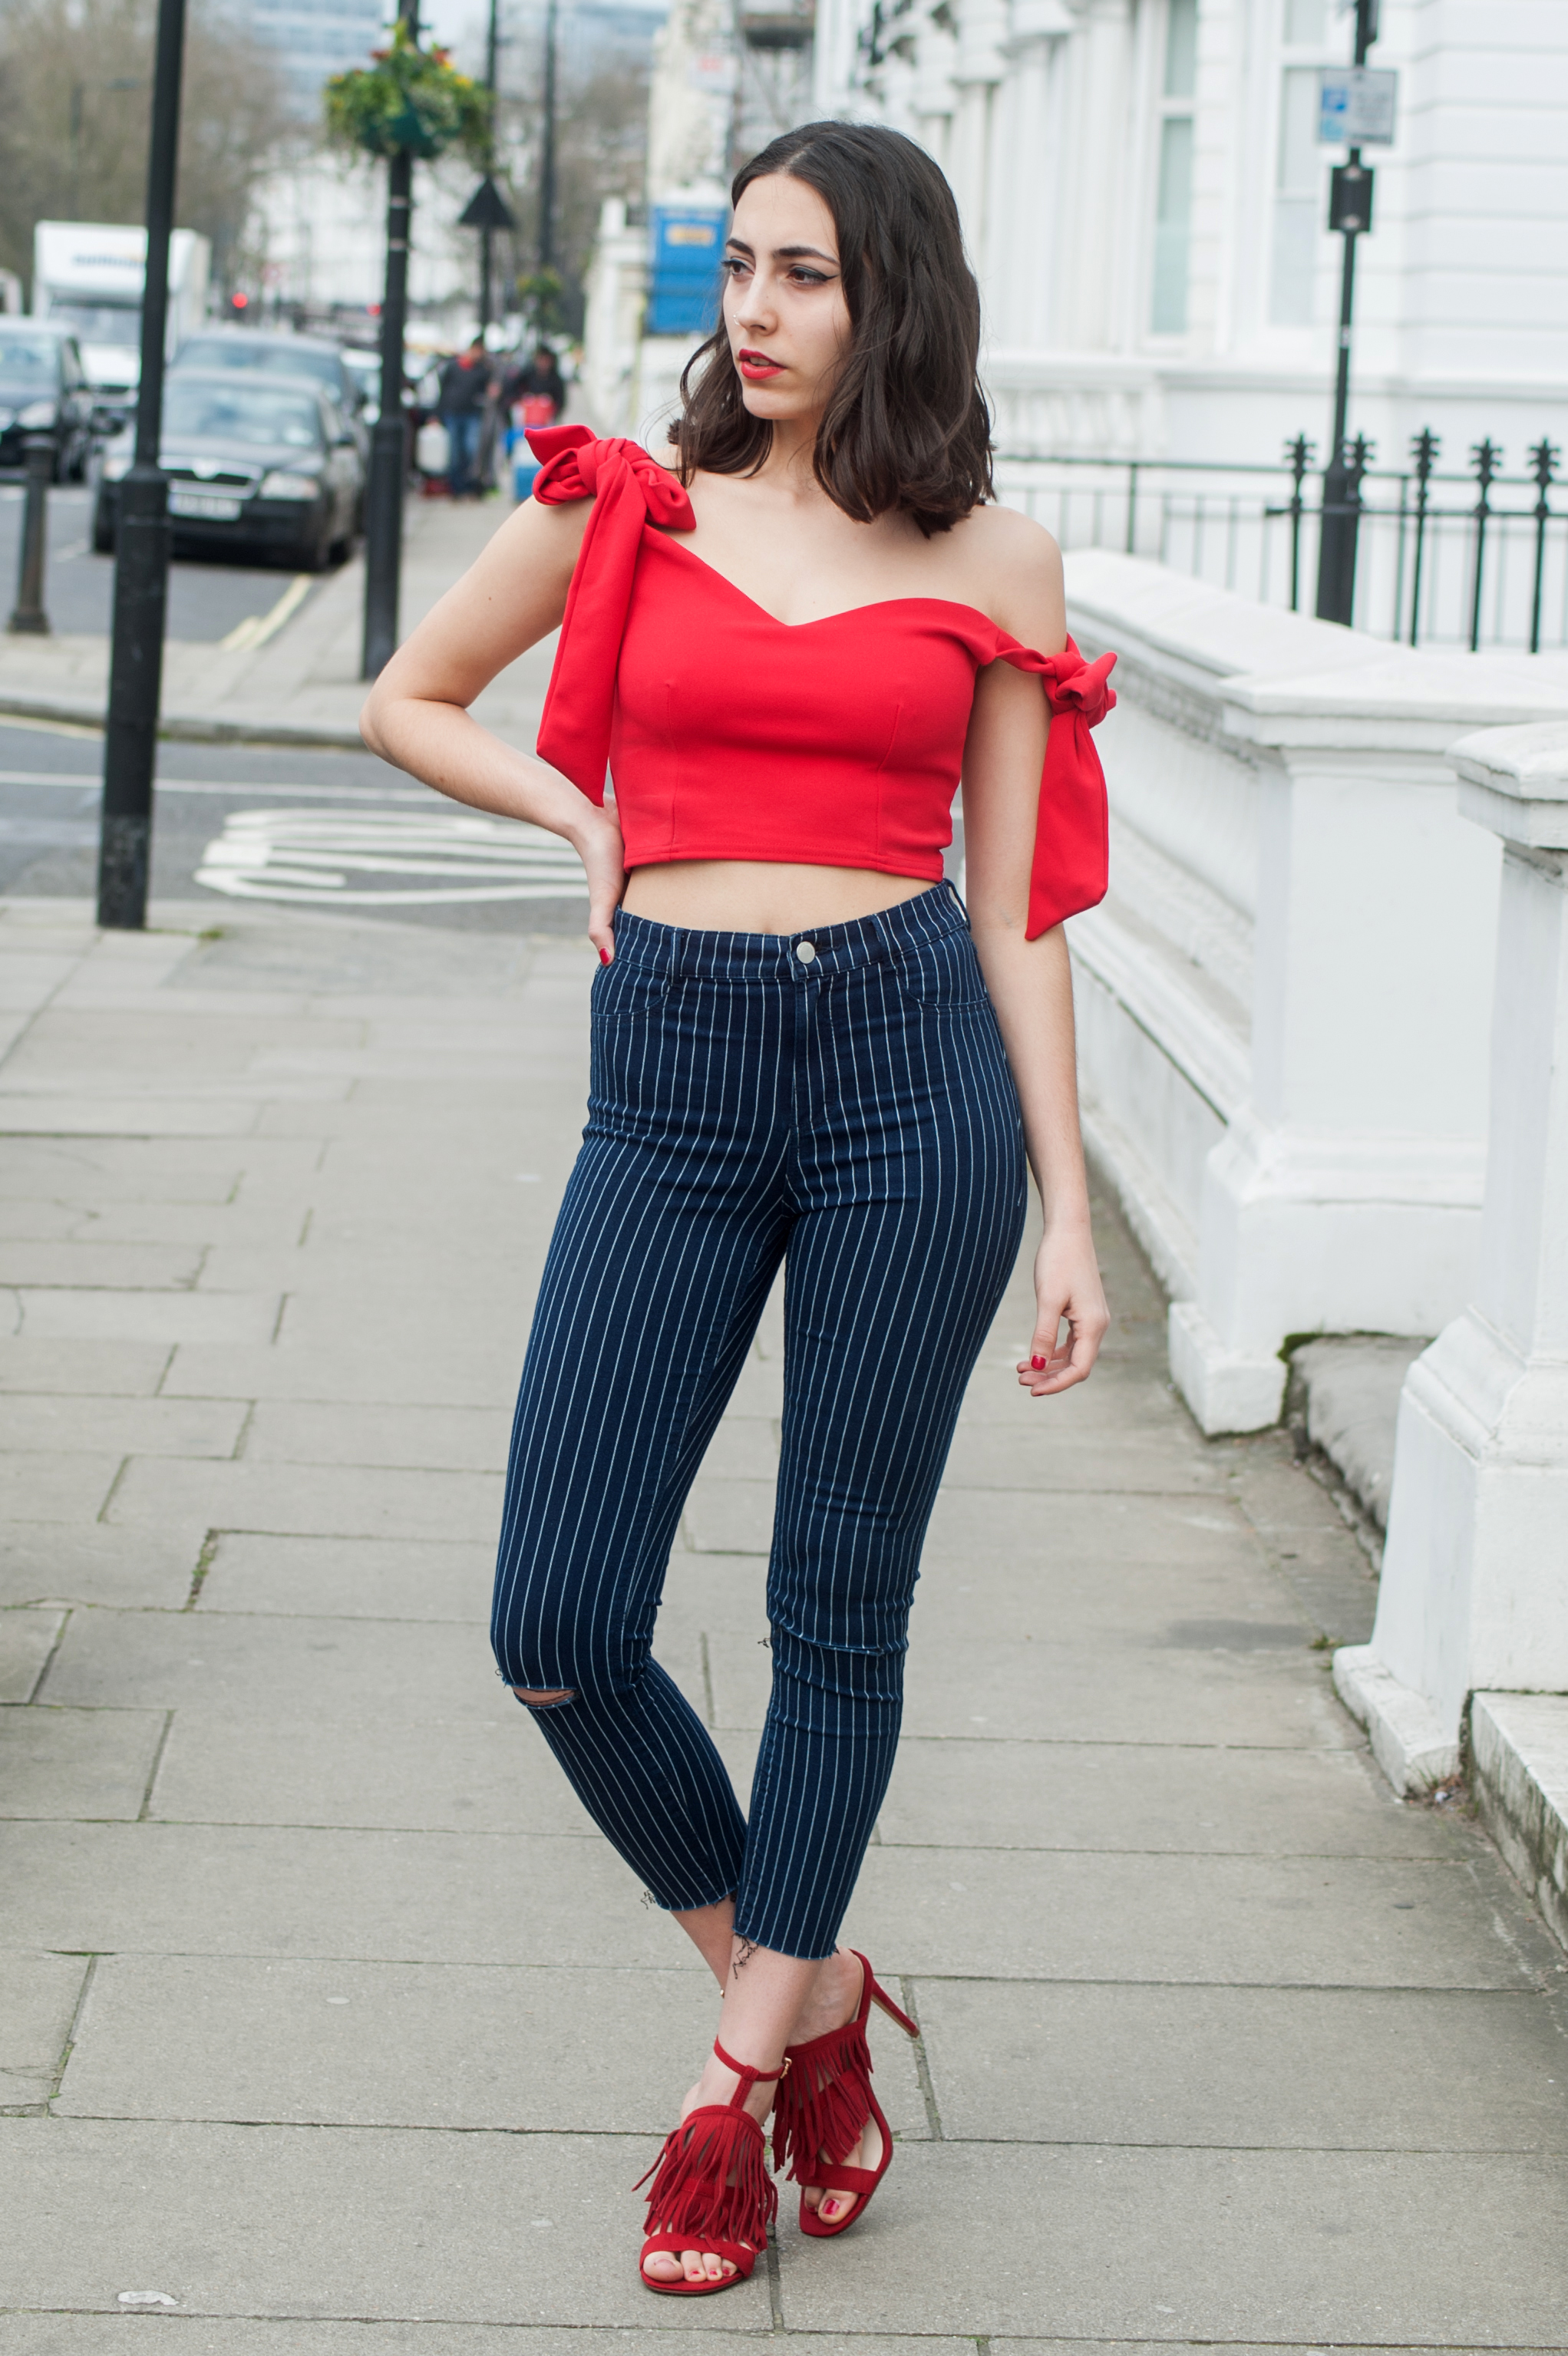 grease-crop-top-red-high-waist-jeans-stripes-bows-fringe-sandals-london-street-style.jpg